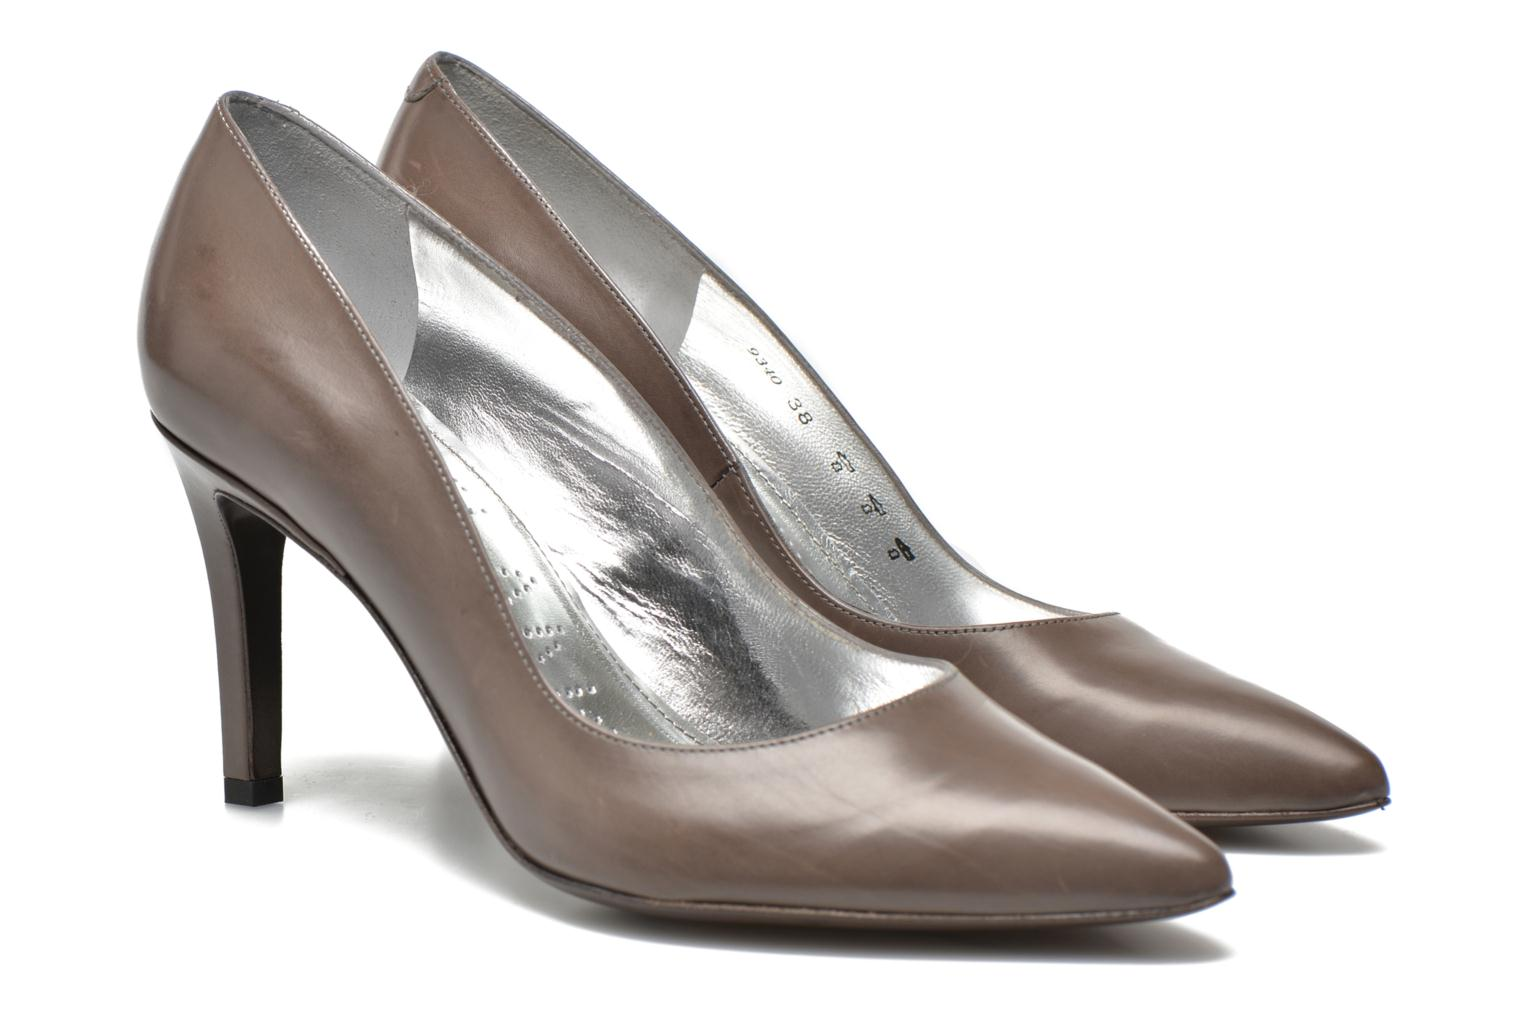 High heels Free Lance Itlys 7 Pumps Grey 3/4 view